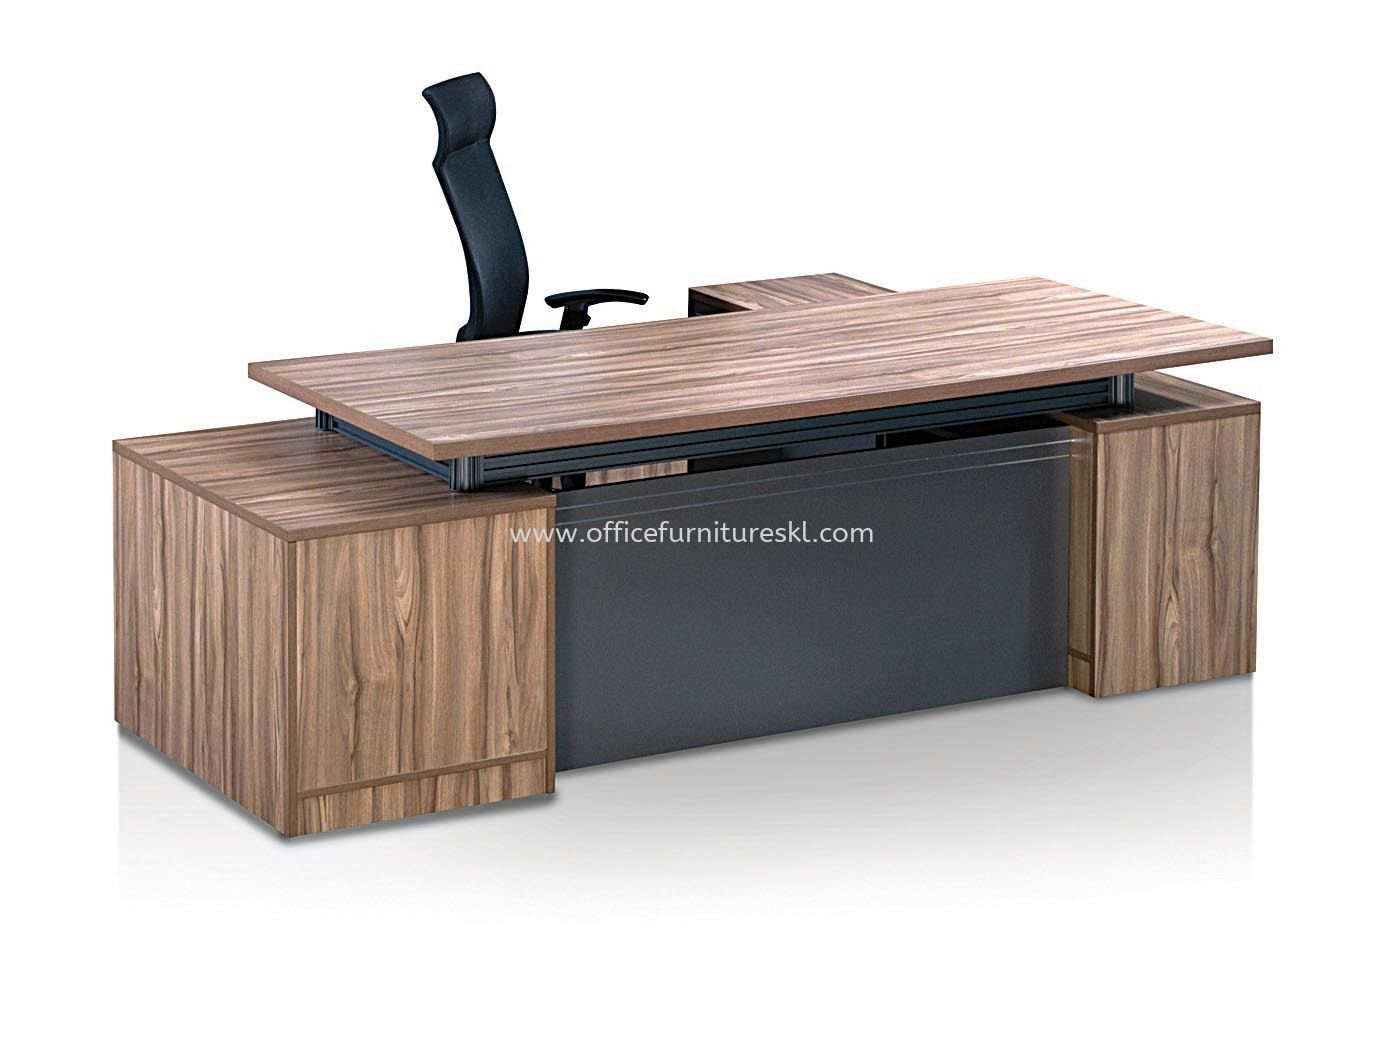 ZARAMO EXECUTIVE DIRECTOR OFFICE TABLE WITH SIDE OFFICE CABINET - Office Furniture Manufacturer Director Office Table | Director Office Table Brickfield | Director Office Table Damansara Jaya | Director Office Table Uptown PJ